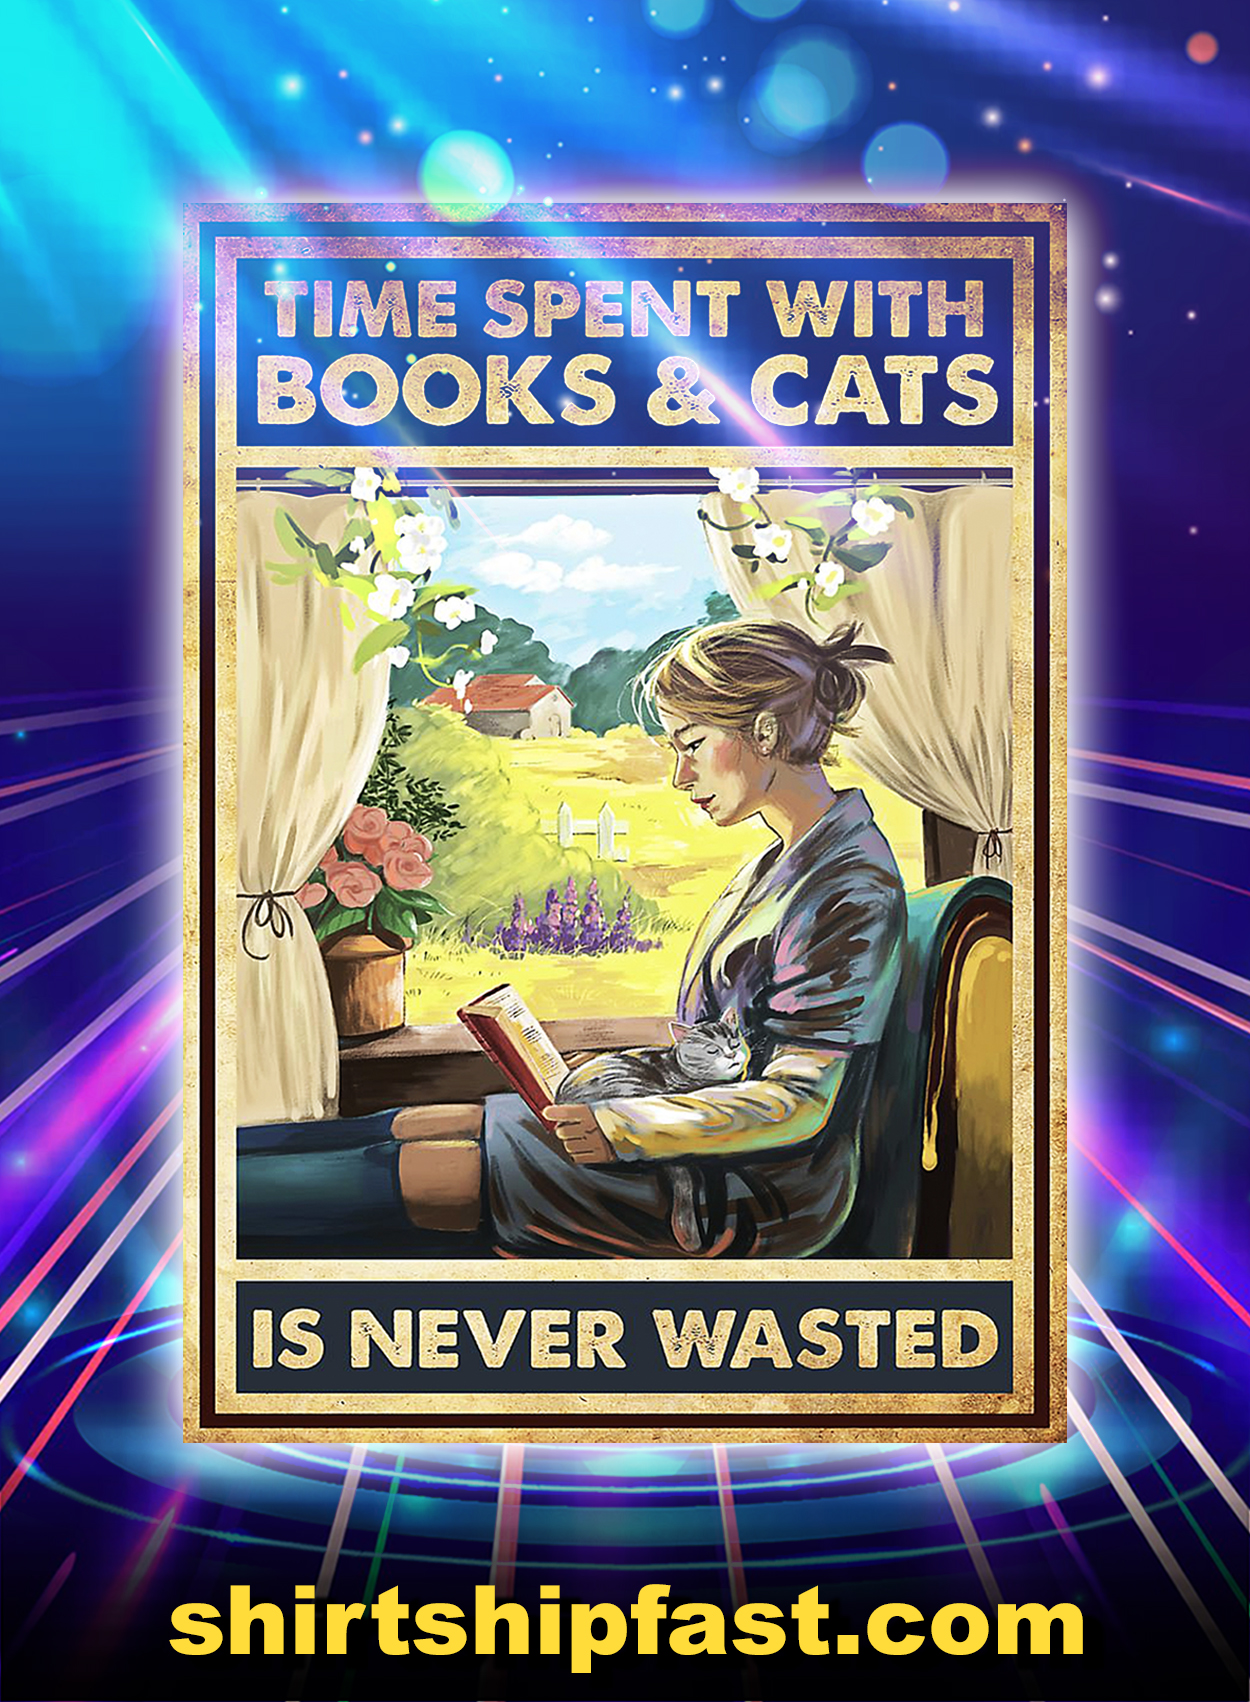 Time spent with books and cats is never wasted poster - A2